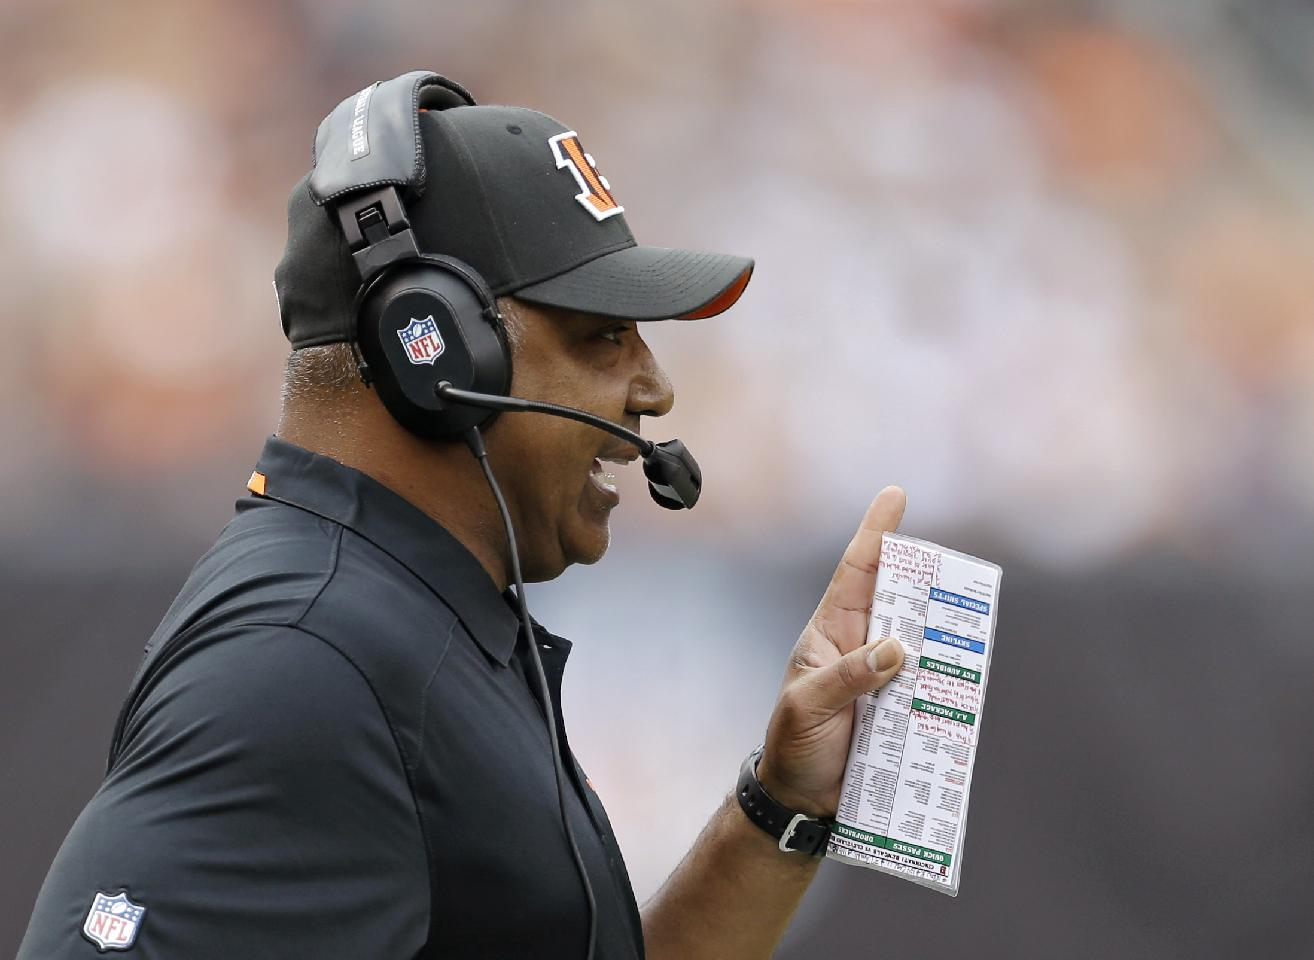 Cincinnati Bengals head coach Marvin Lewis talks on his headset in the first quarter of an NFL football game against the Cleveland Browns Sunday, Sept. 29, 2013, in Cleveland